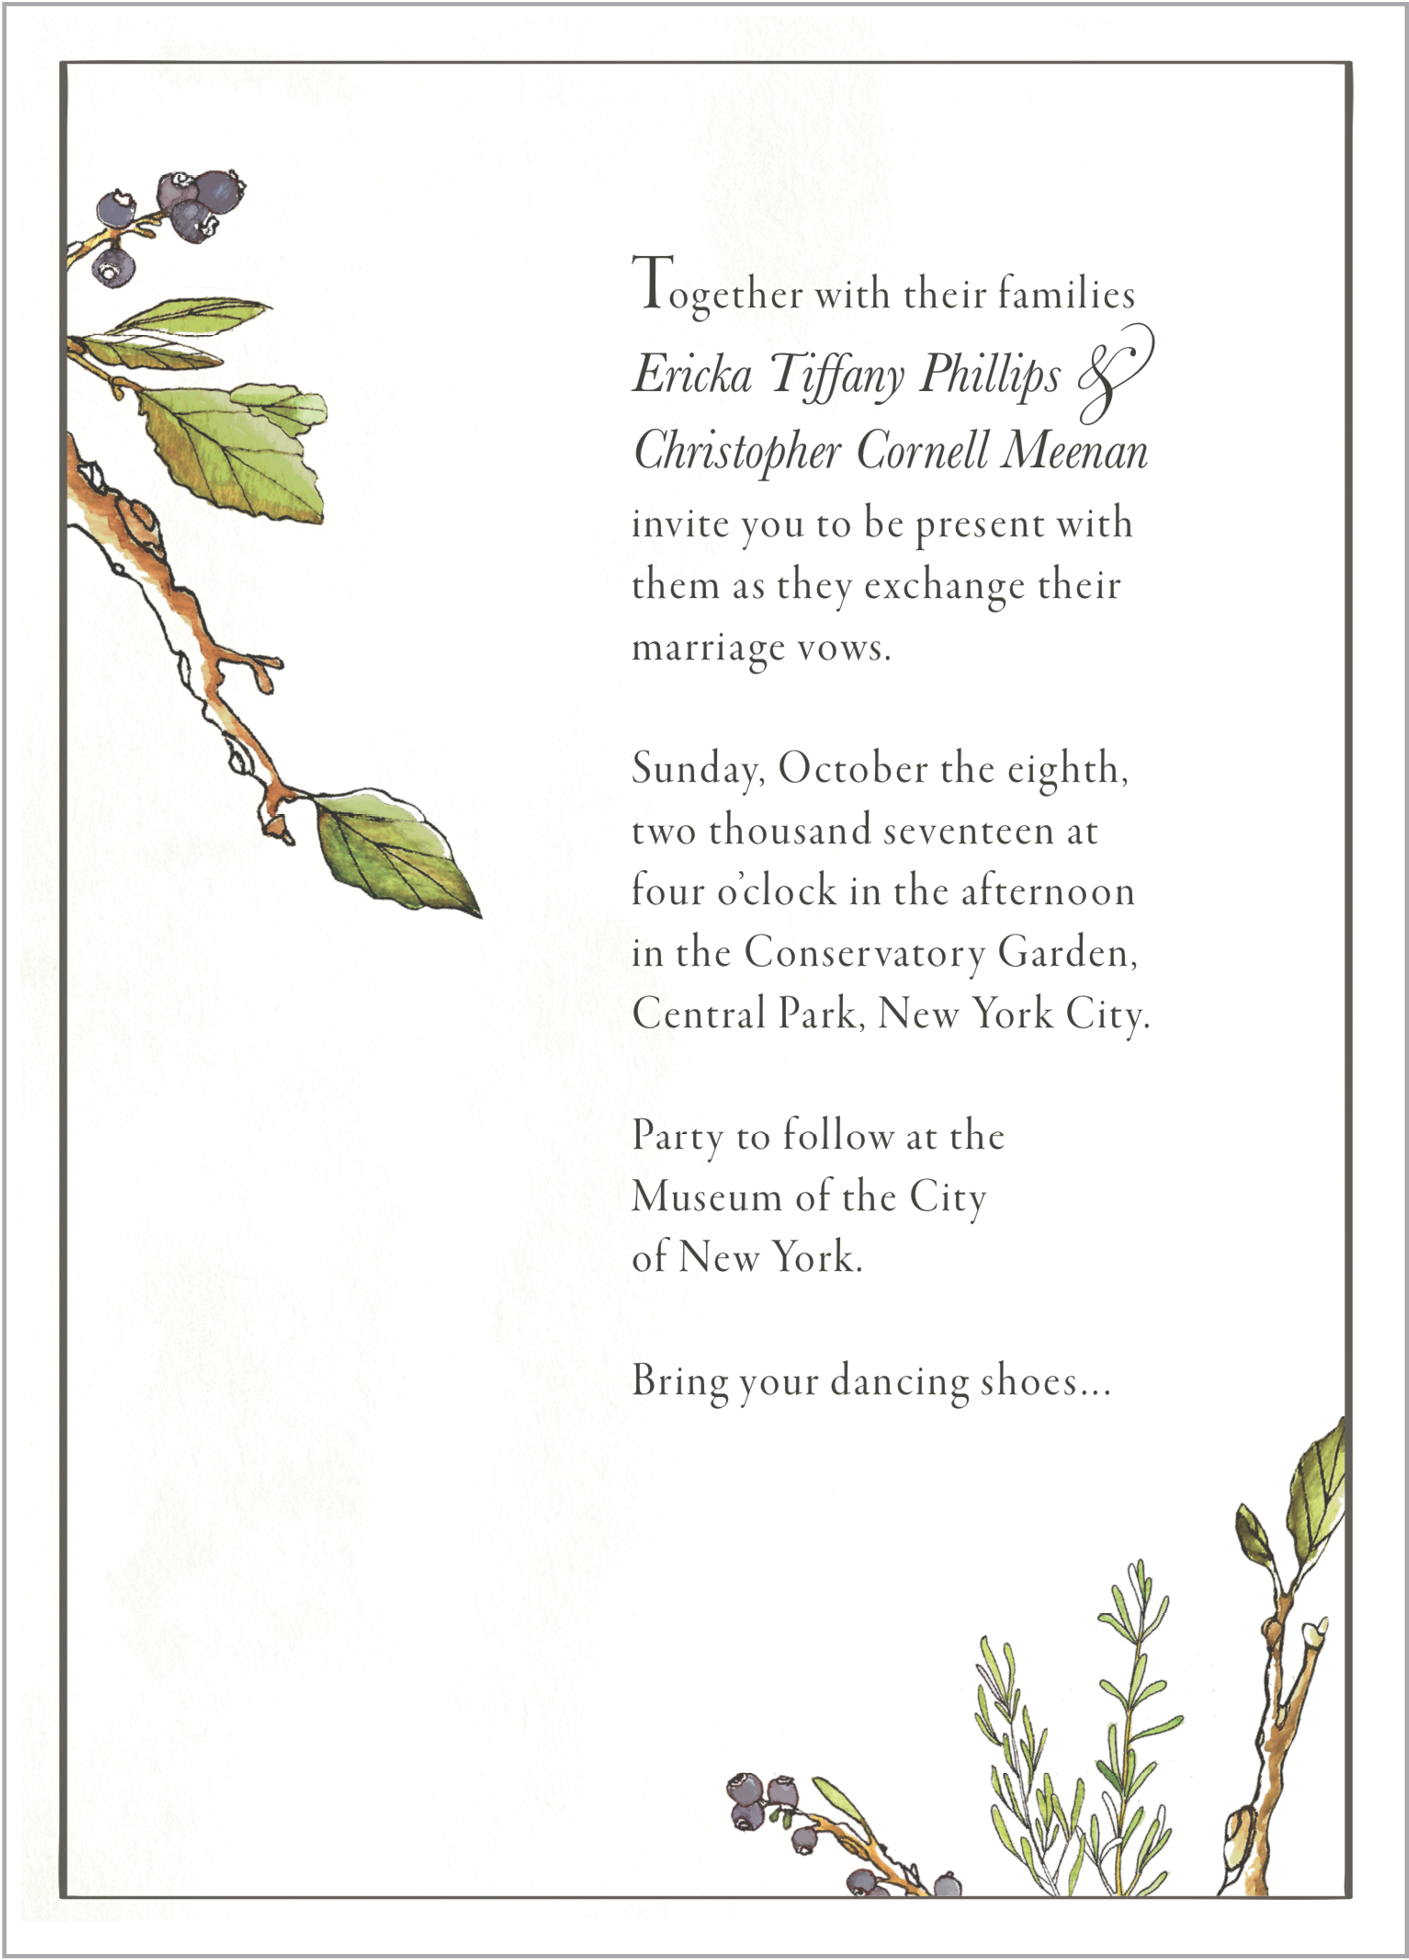 ericka + christopher'smarriage ceremony,october 2017 - At Ericka and Chris's marriage ceremony and relationship party, the couple wished to share their love of the New York City neighborhood they together called home.In line with the Buddhist ceremony planned in Central Park, I incorporated soft, natural elements and herbal imagery to evoke the spirt of Ericka and Chris's event.Left: Invitation